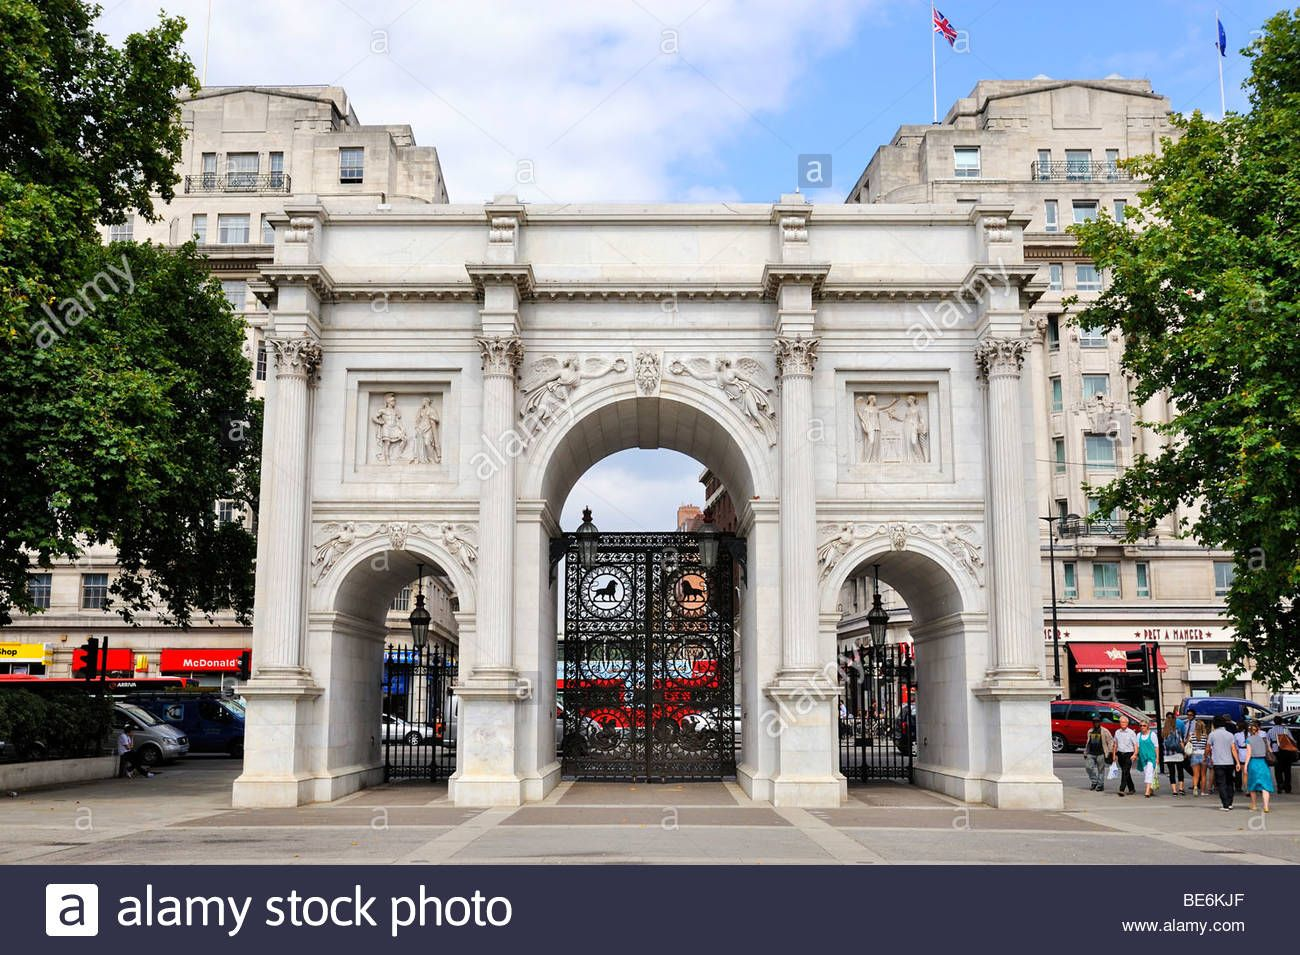 Marble Arch Monument Made Of White Carrara Marble In Hyde Park London England Marble Arch Arch Hyde Park